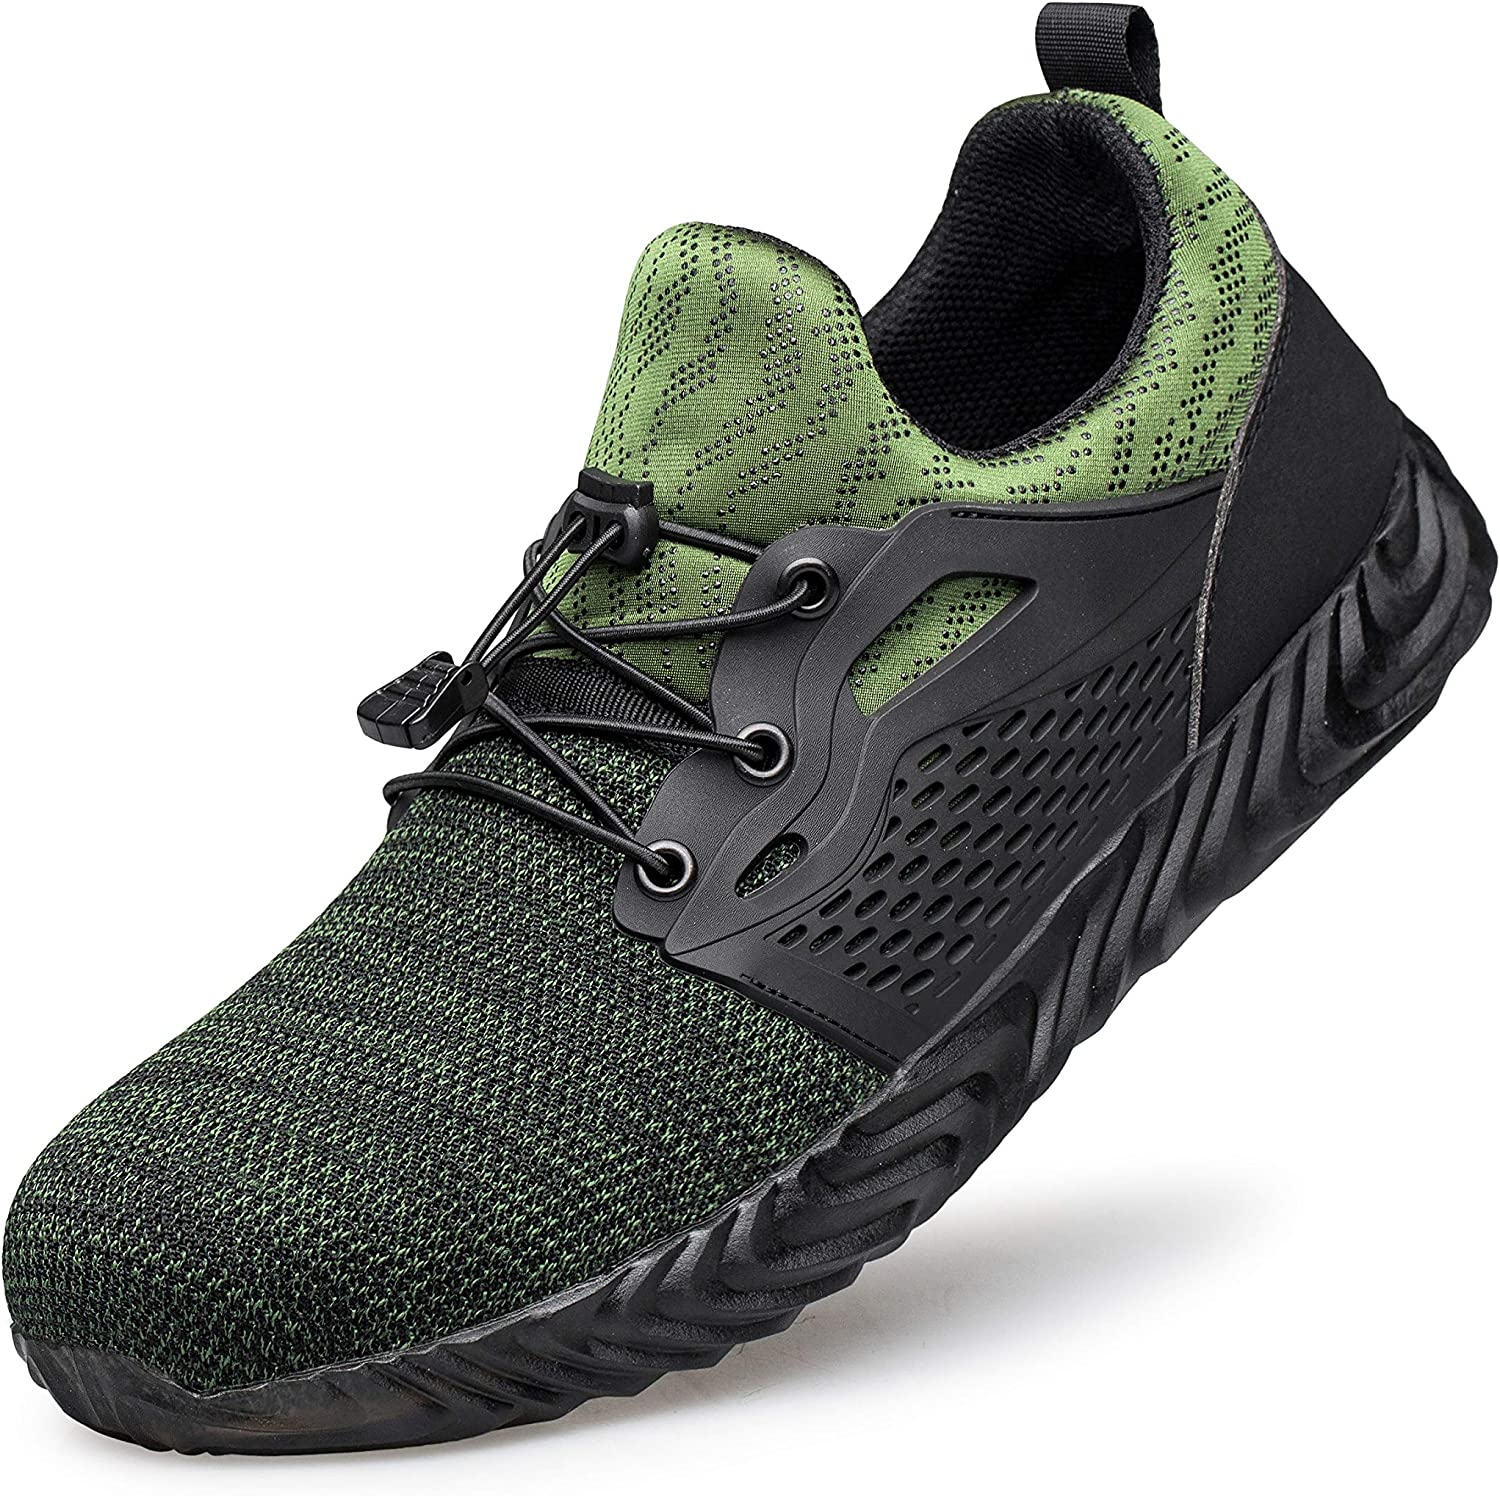 Hongchengye Steel Department store Toe Shoes Men Indestructible Sale Special Price Women Work Safety